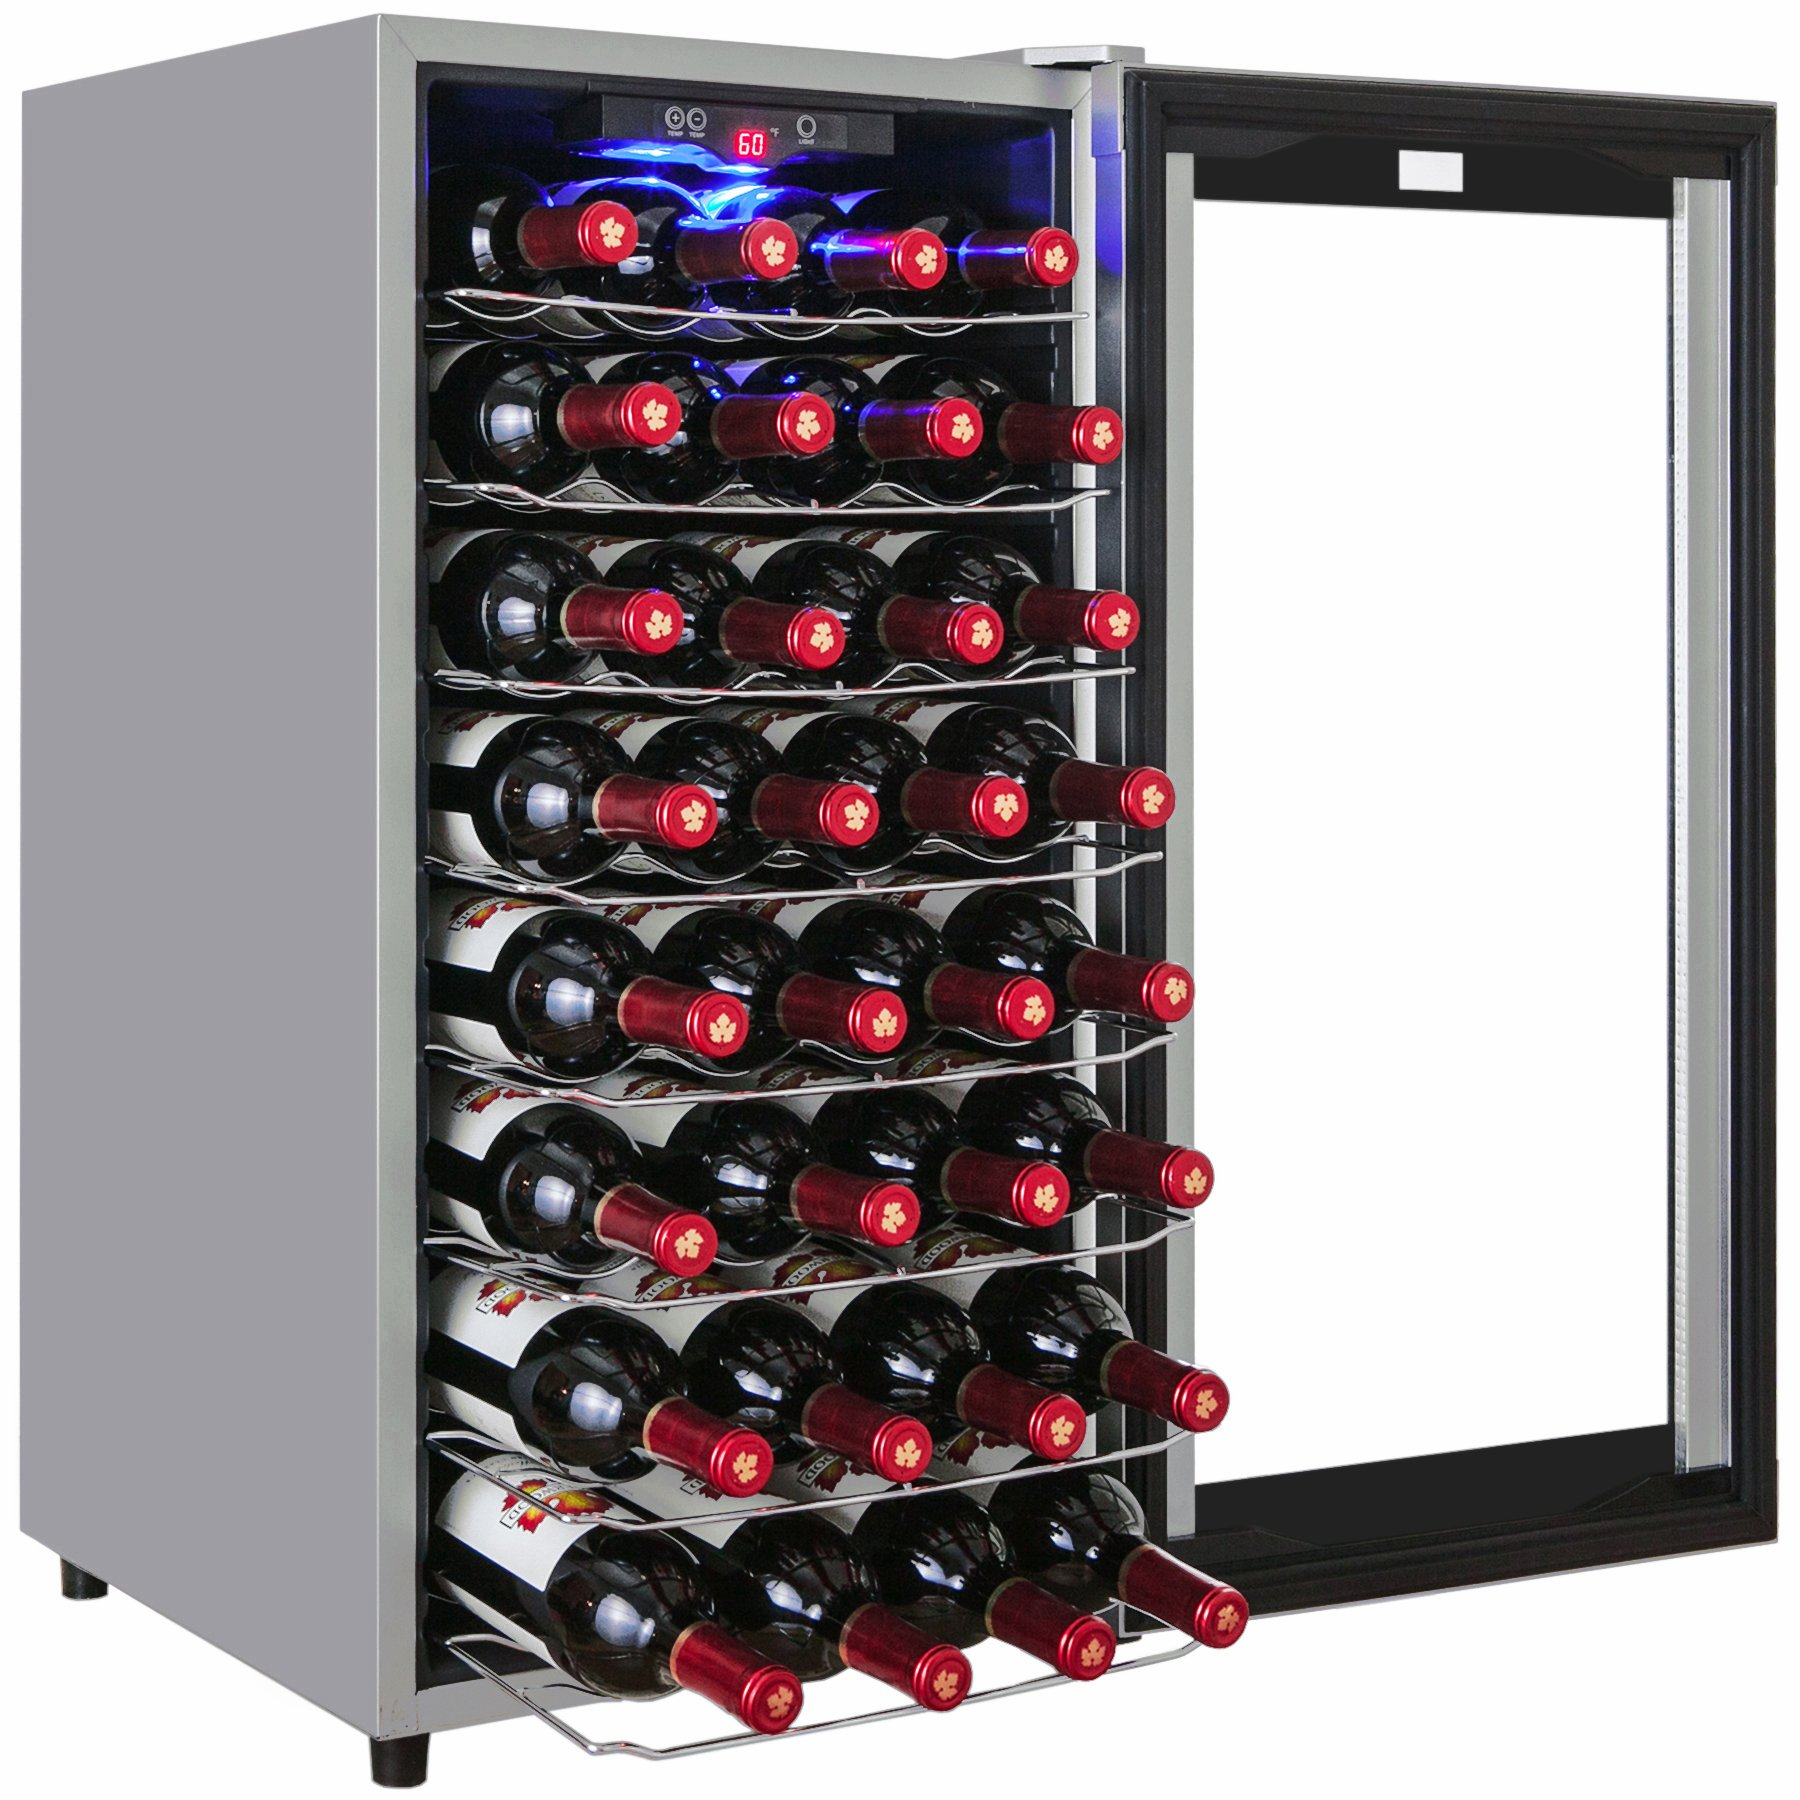 AKDY 32 Bottles Single Zone Thermoelectric Freestanding Wine Cooler Cellar w/ Touch Control